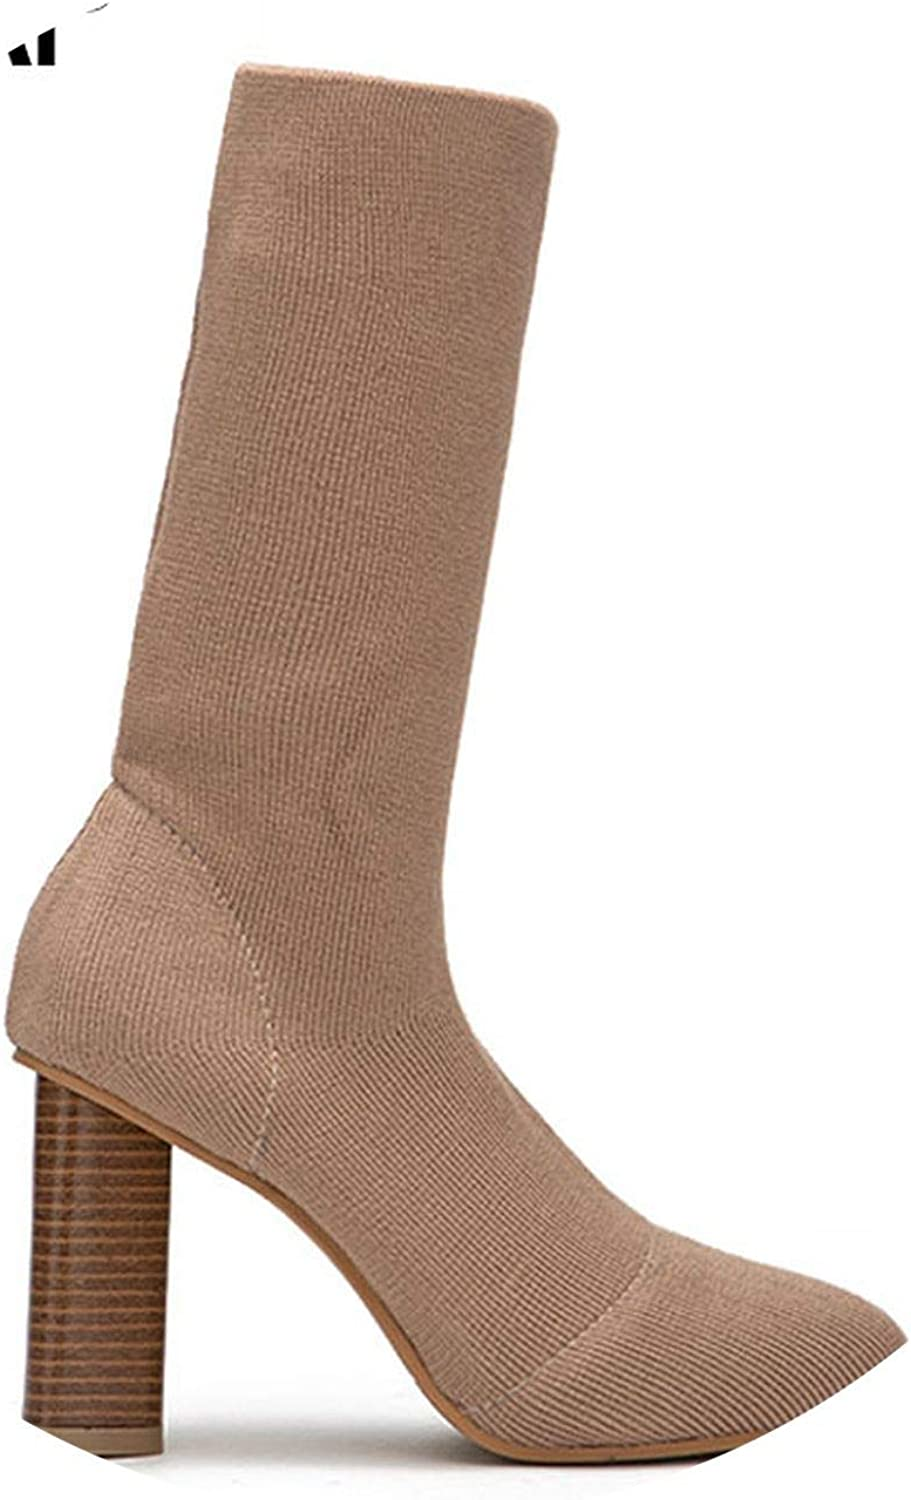 Warm Winter Boots High Heels Slip-On Socks Pointed Toe Ankle Knitting shoes 014C2577-4,Apricot,8.5,